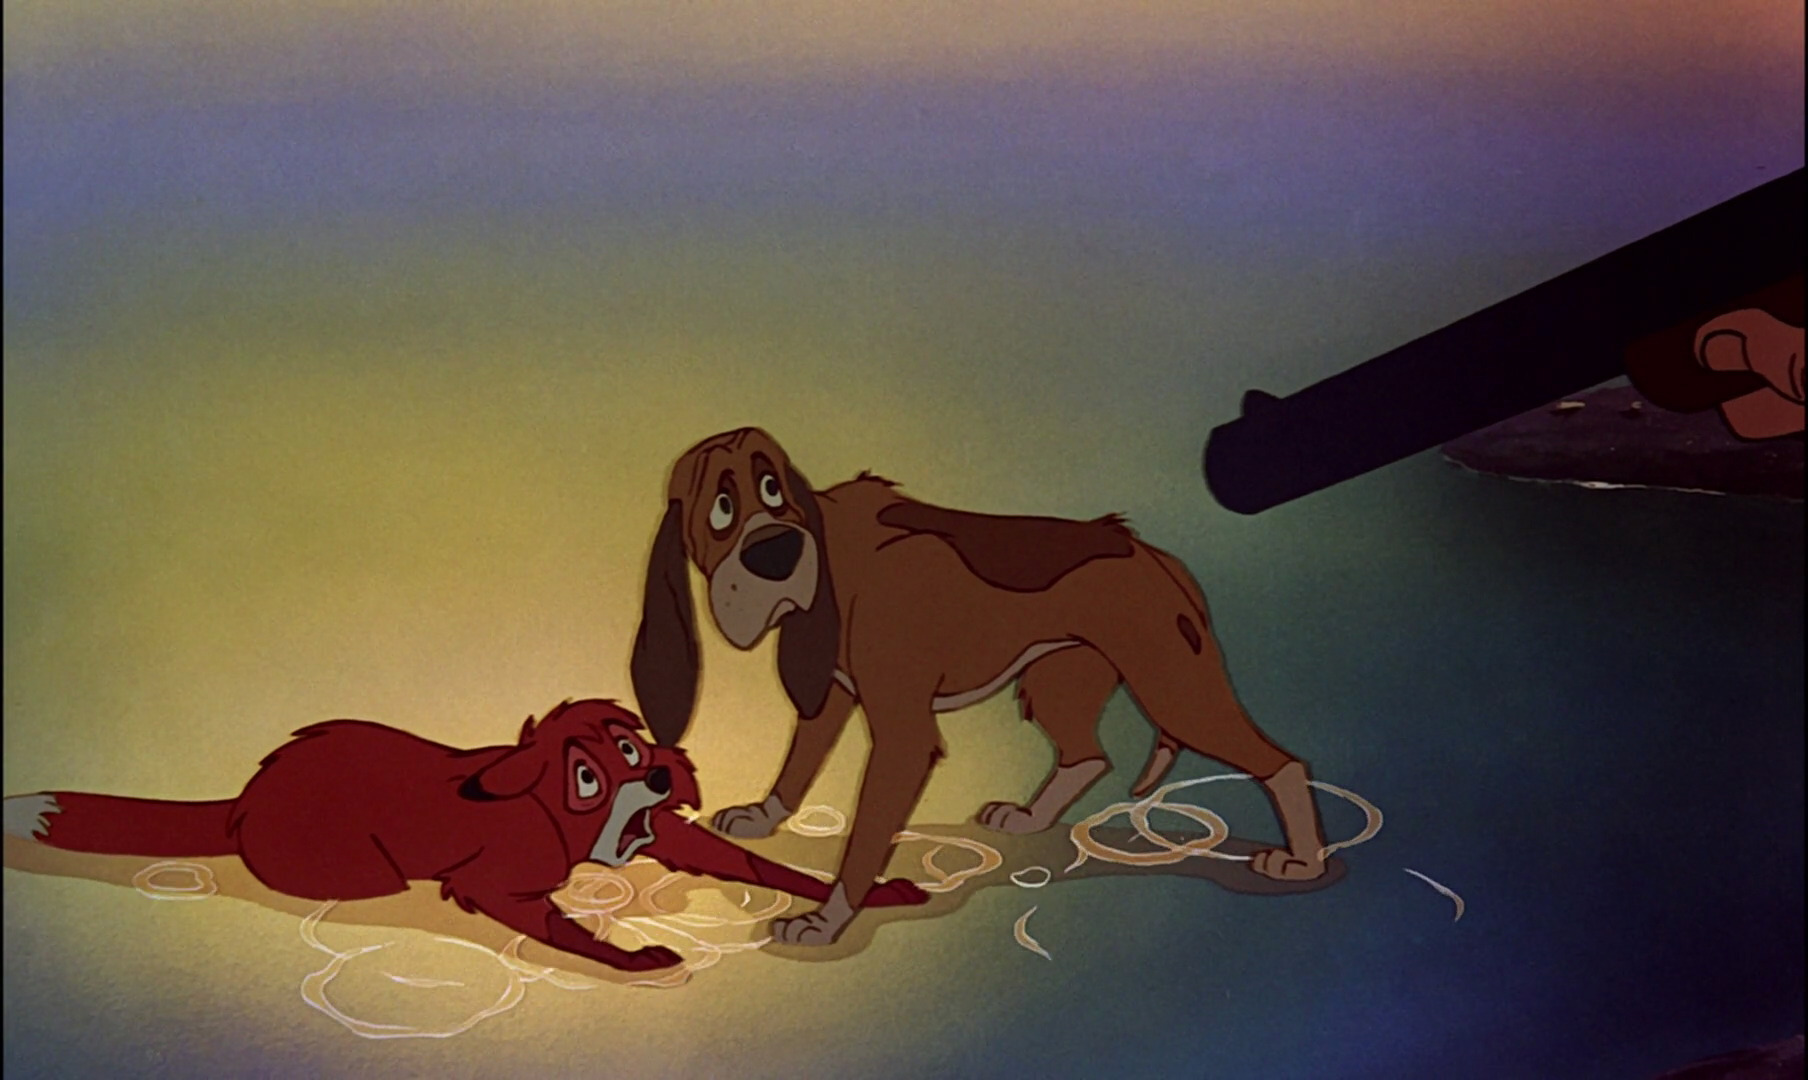 Terrible Sroties - The Fox and the Hound